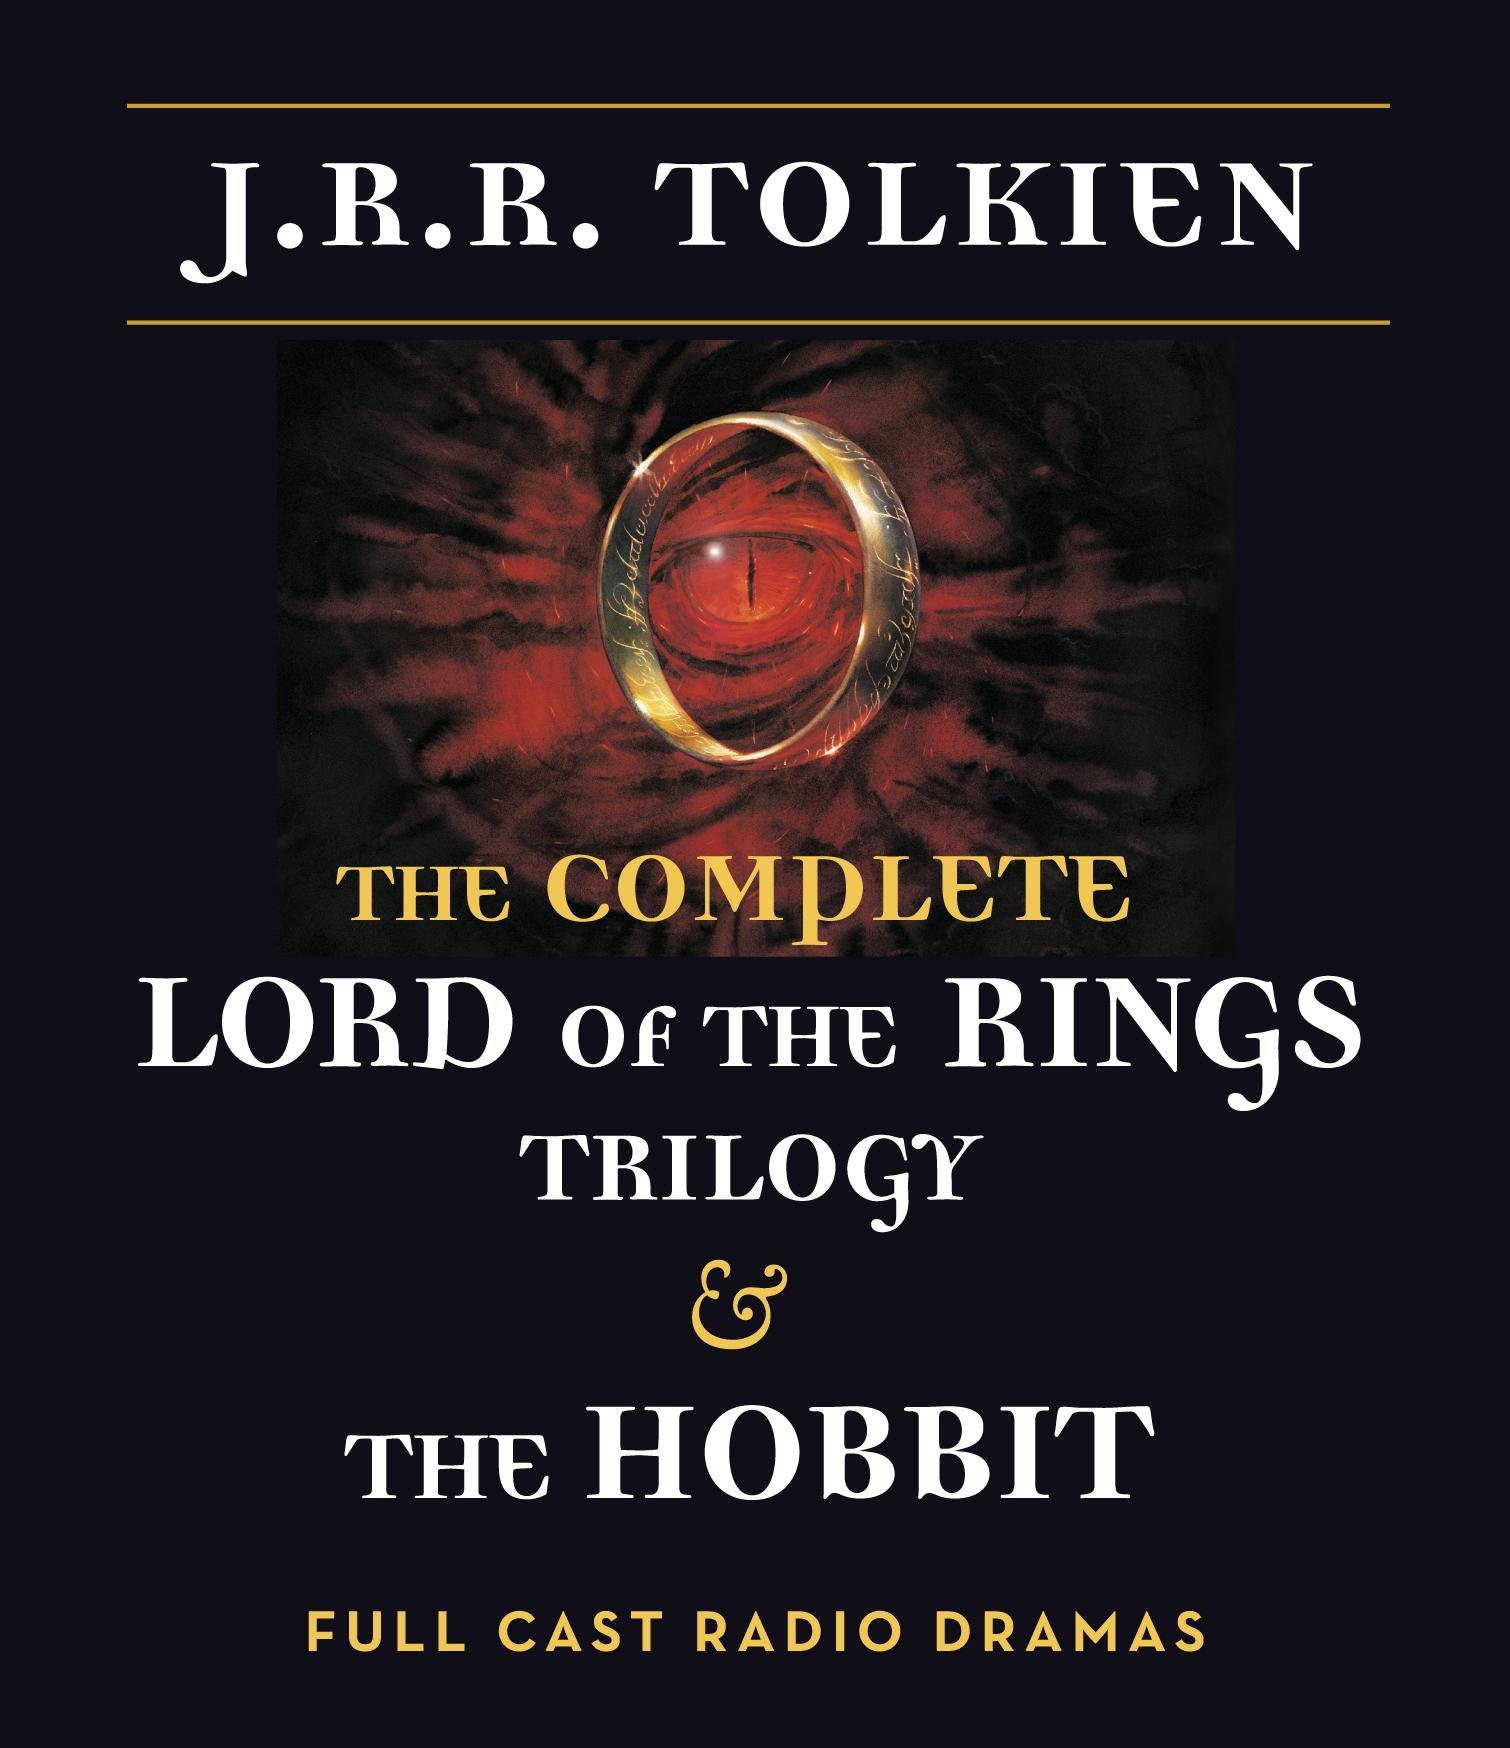 The Complete Lord of the Rings Trilogy & The Hobbit Set by Brand: HighBridge Company